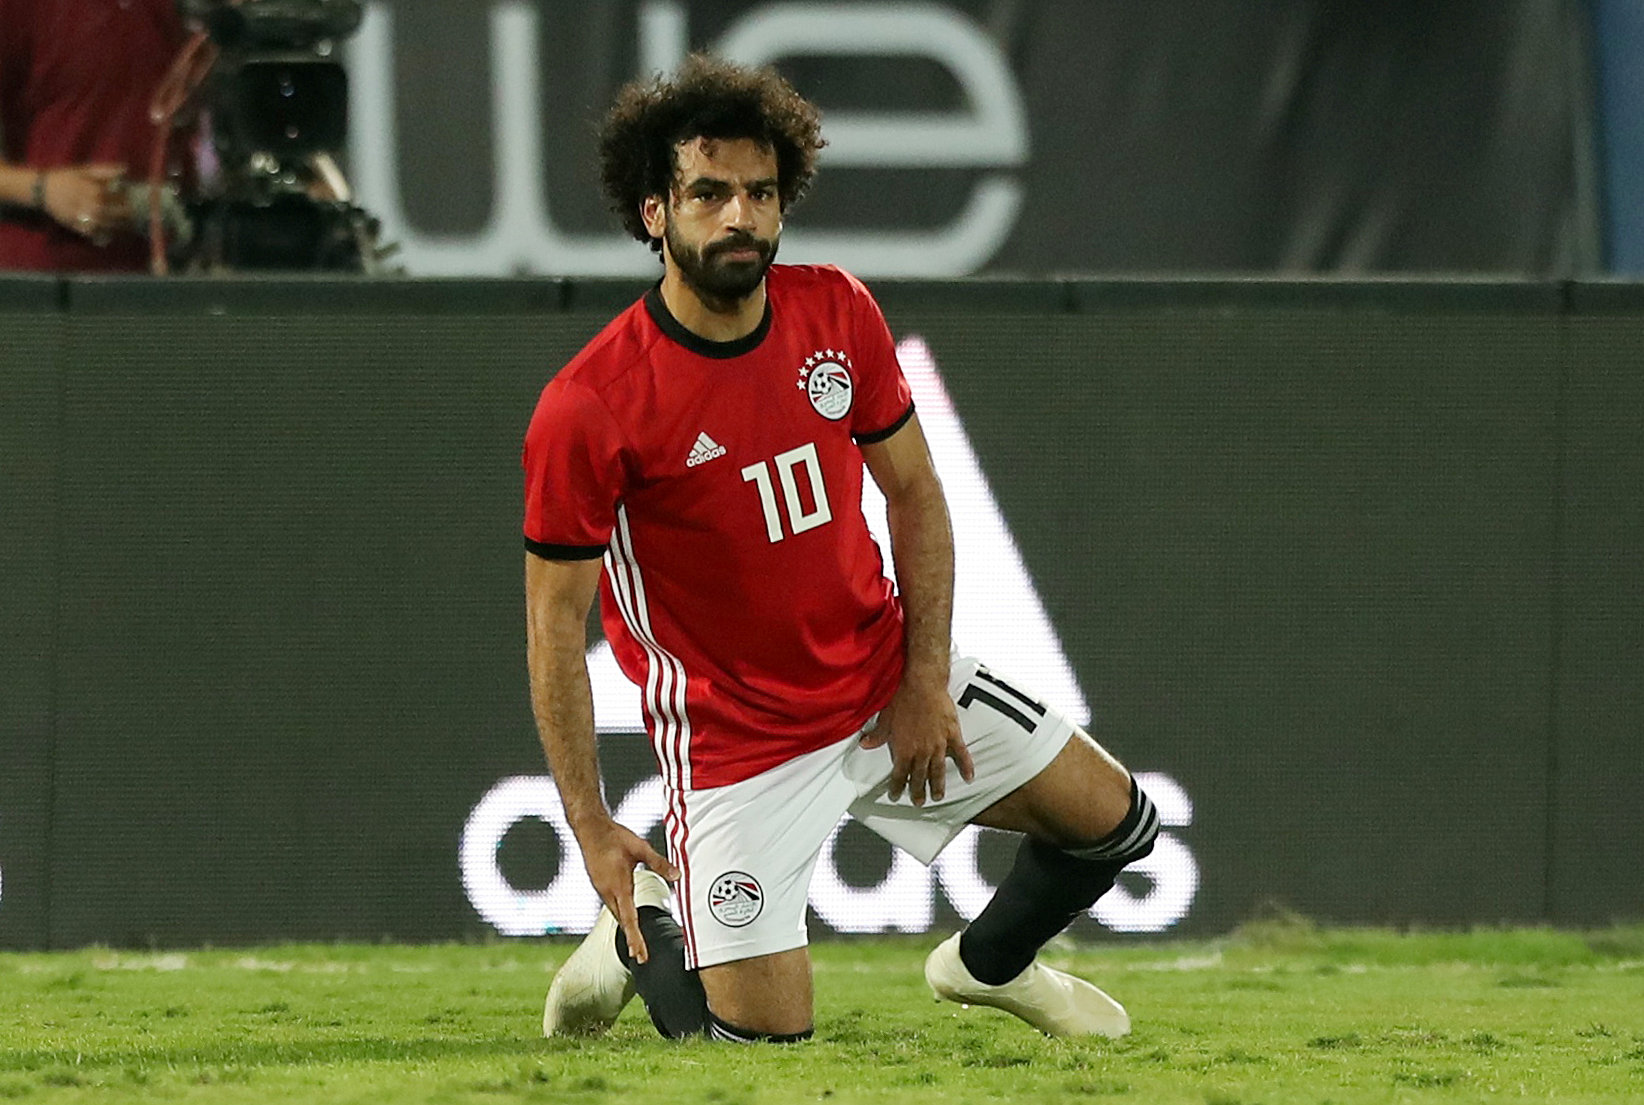 Football: Cameroon get first win for Seedorf, Salah injured in Egypt victory